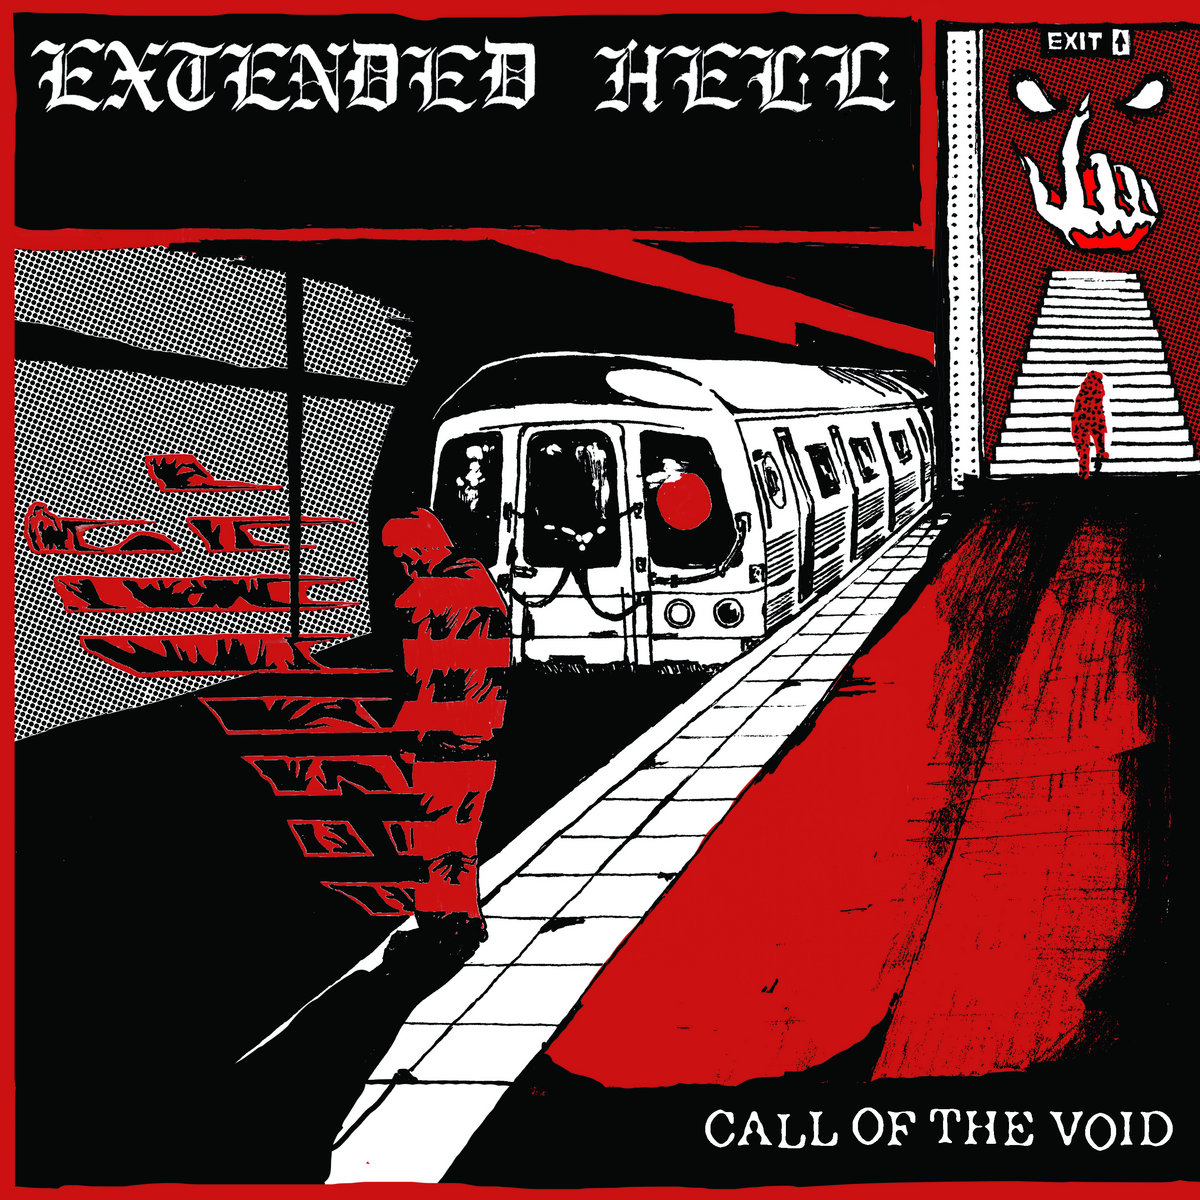 EXTENDED HELL - Call Of The Void 7